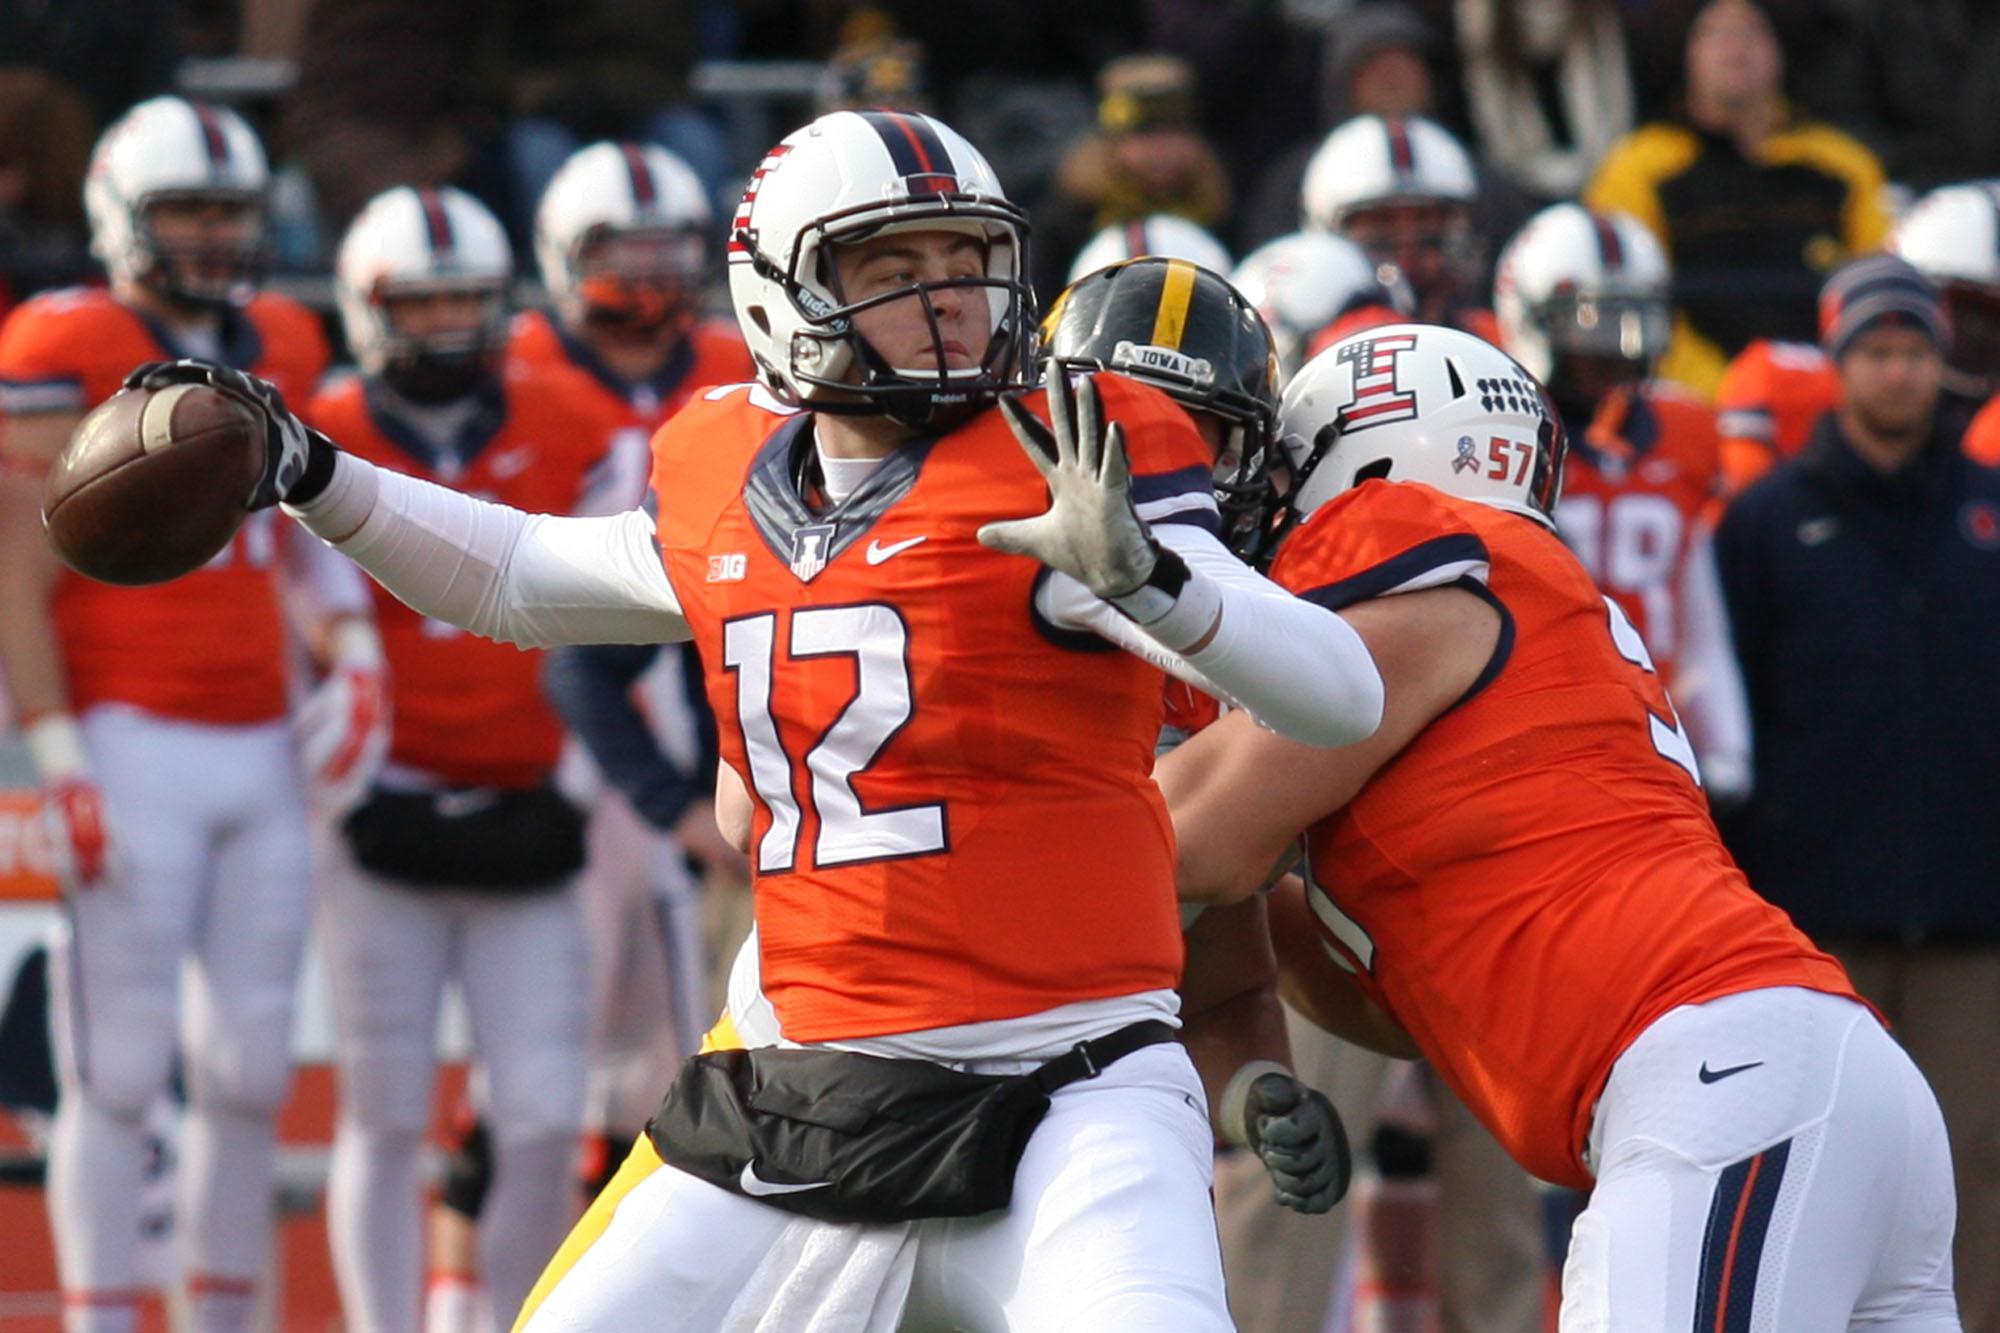 Illinois' Wes Lunt (12) looks for an open pass during the game against Iowa at Memorial Stadium on Saturday, Nov. 15, 2014. Illinois lost 30-14.